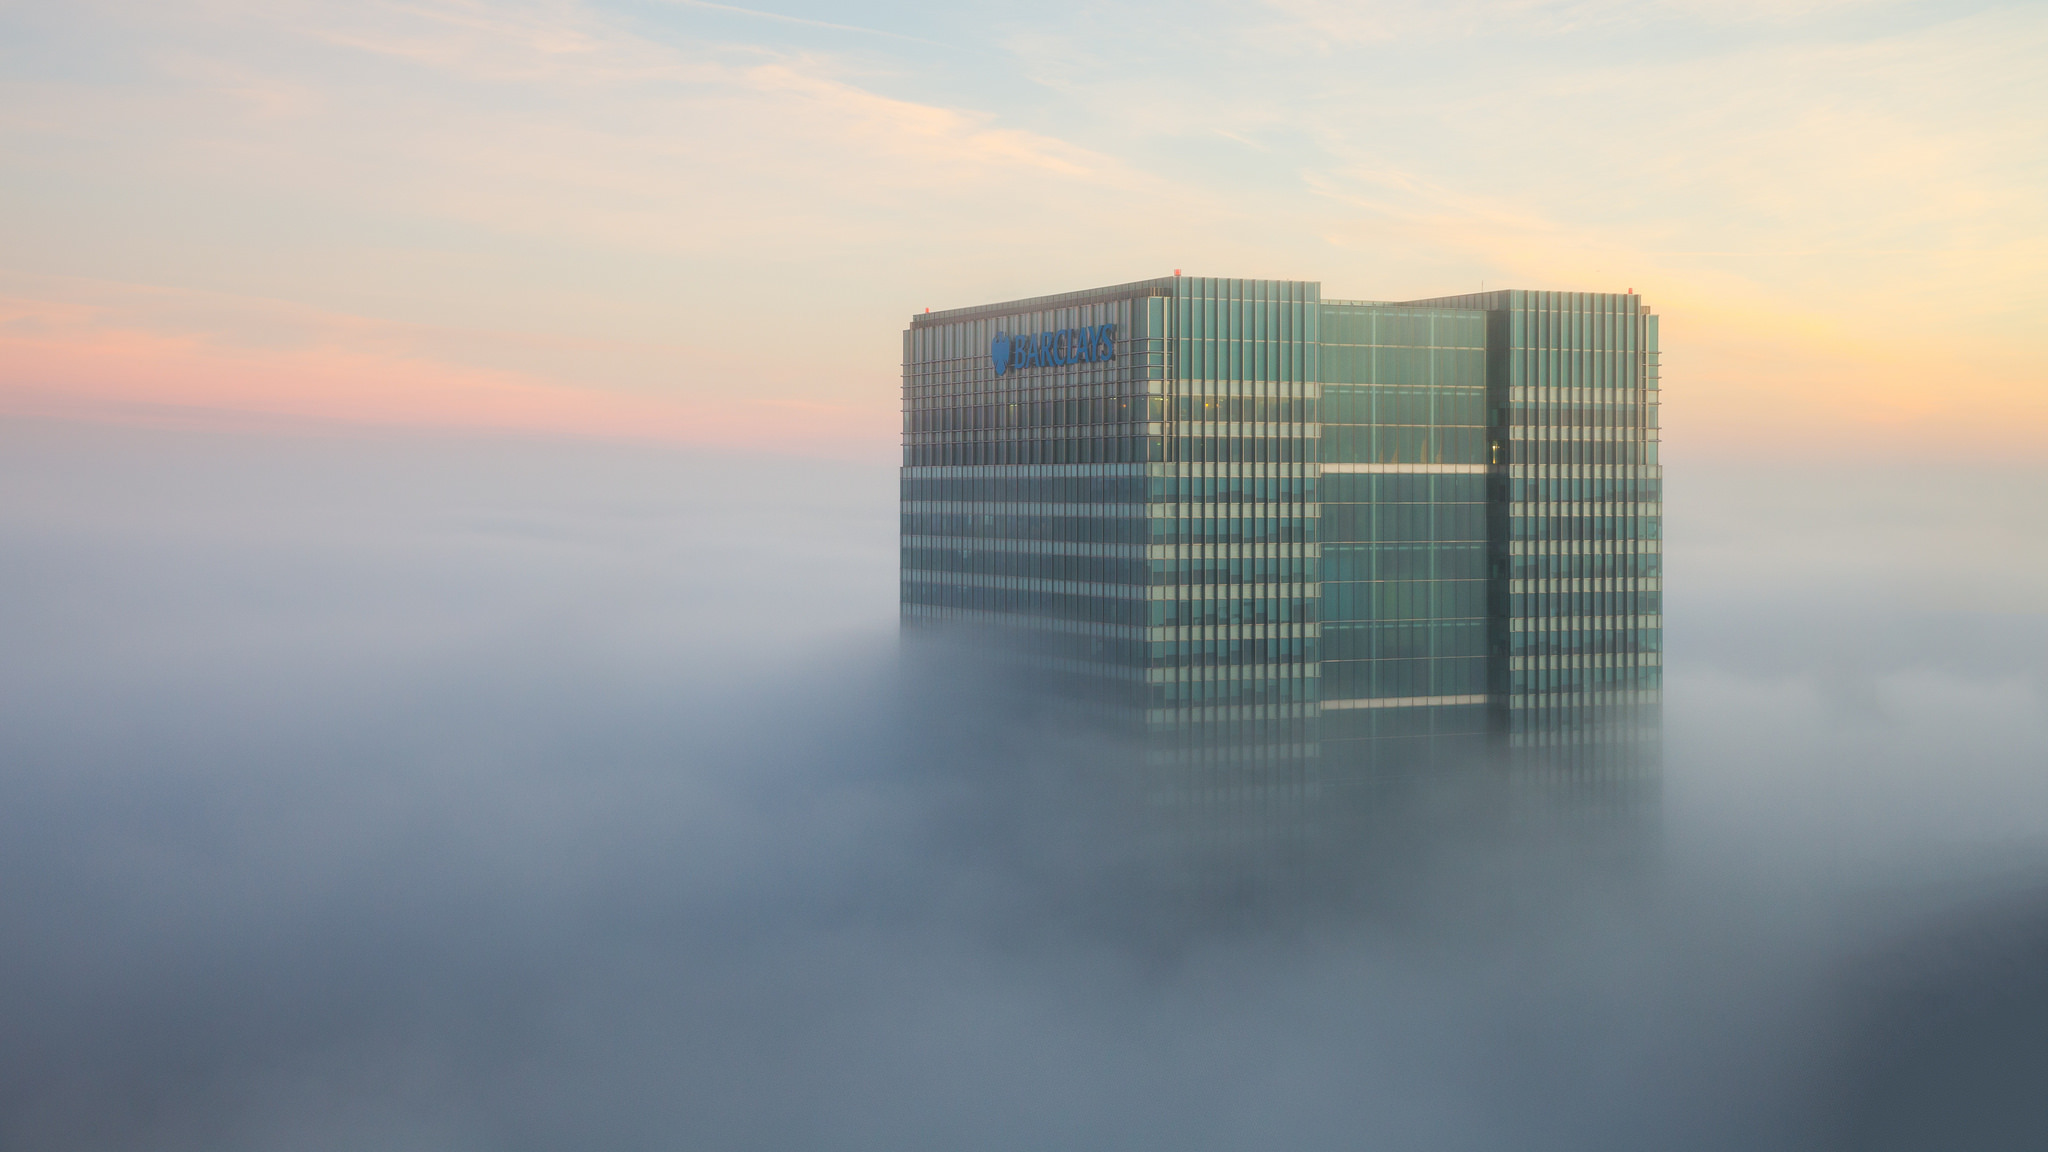 Barclays skyscraper through the fog in London.